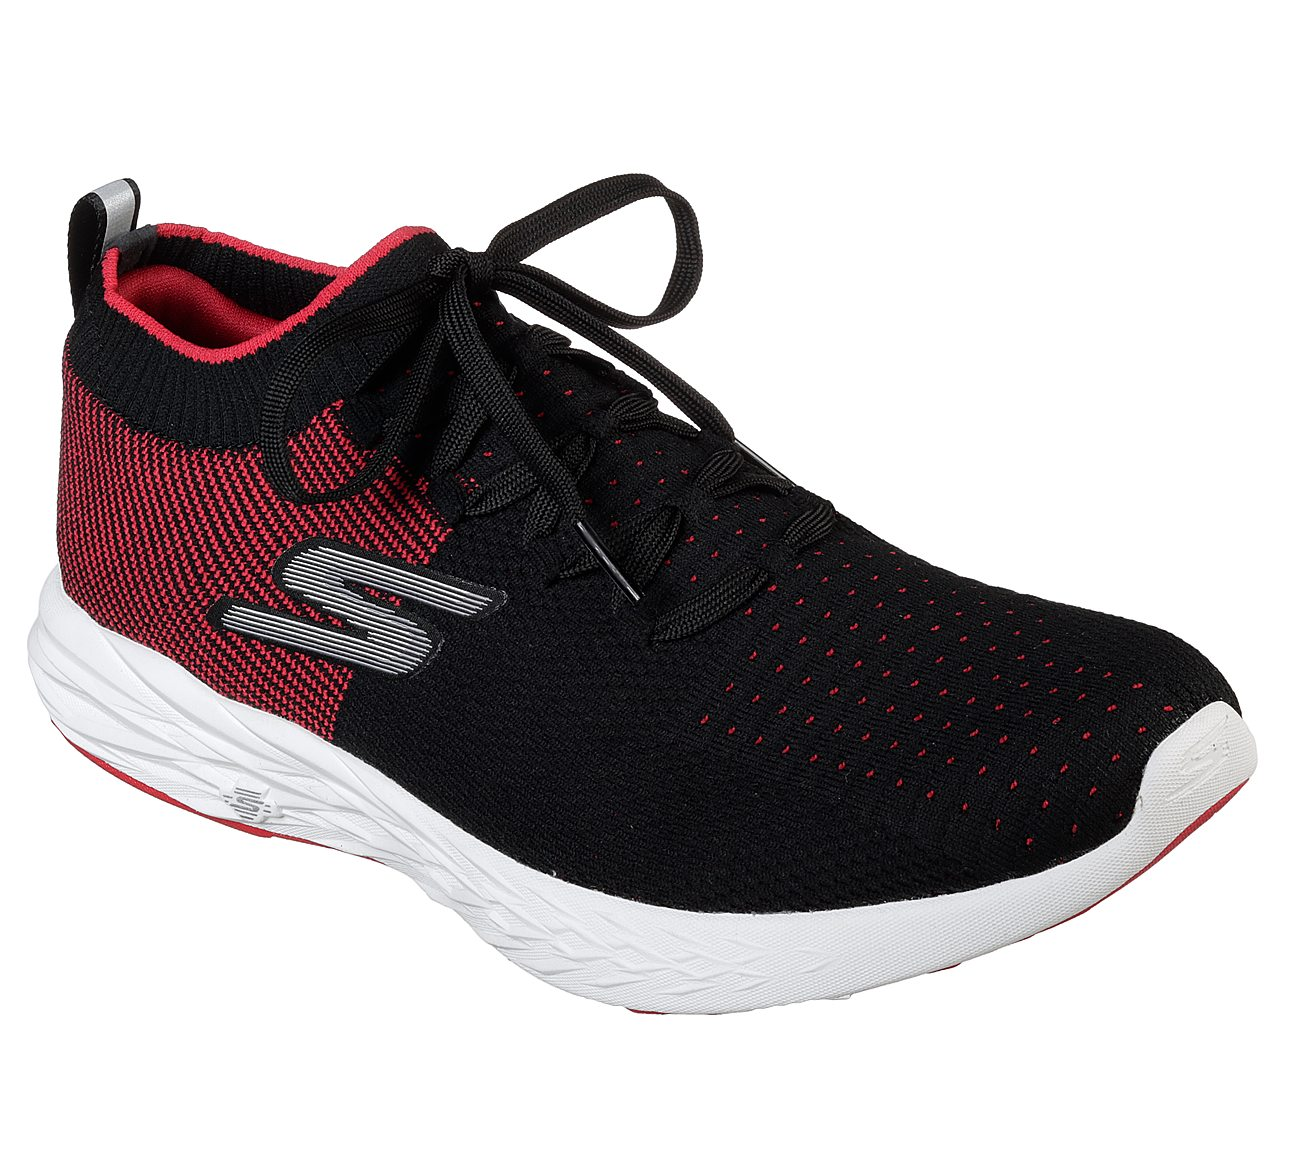 Skechers GOrun 6 Skechers Performance Shoes